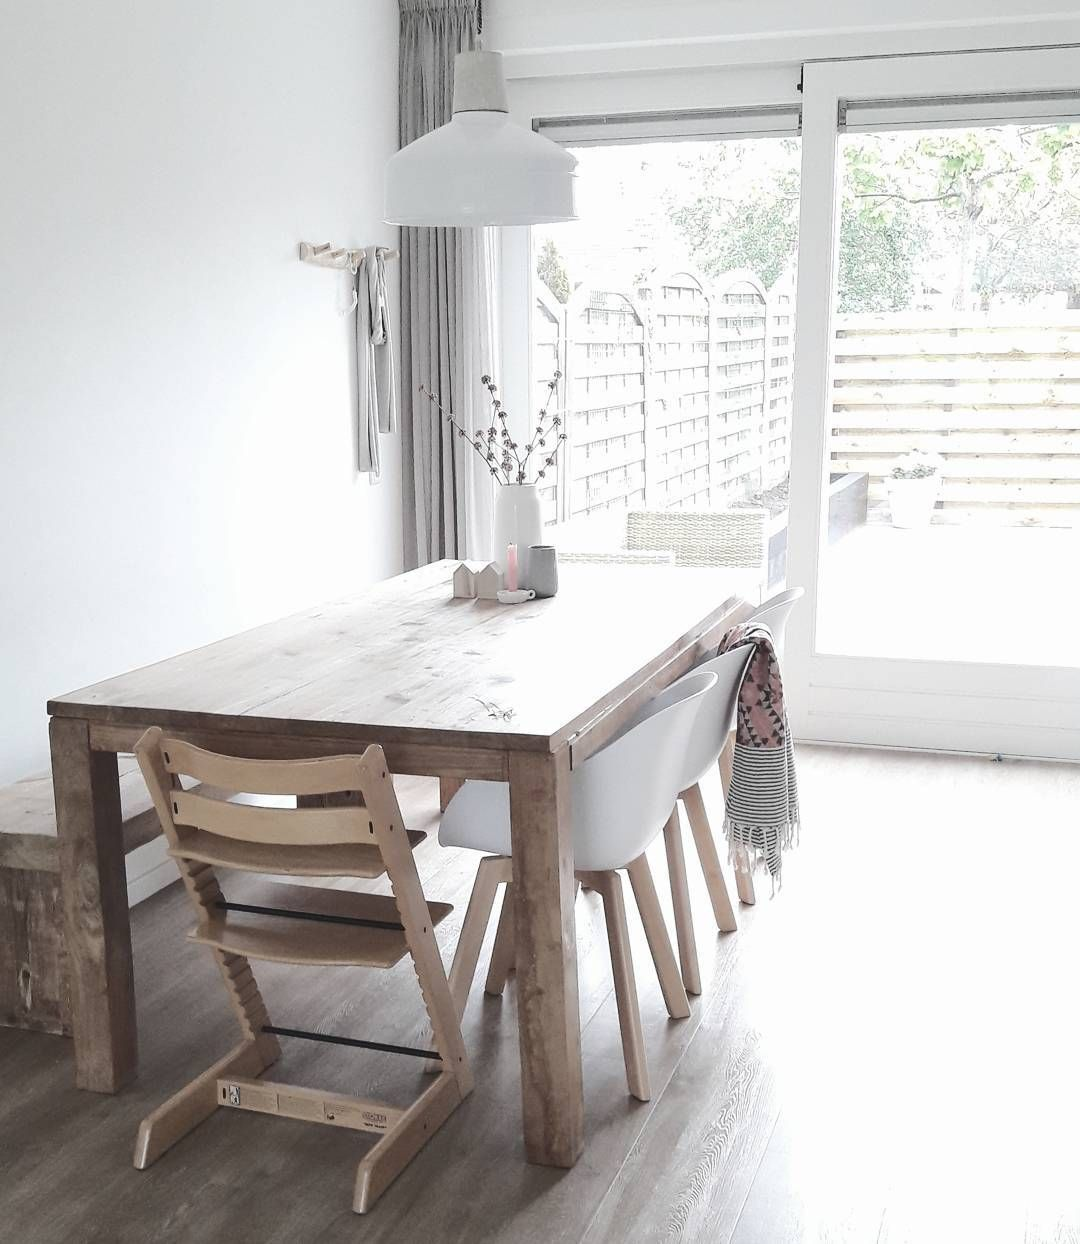 We love this minimal yet rustic kitchen table! The white and wood ...